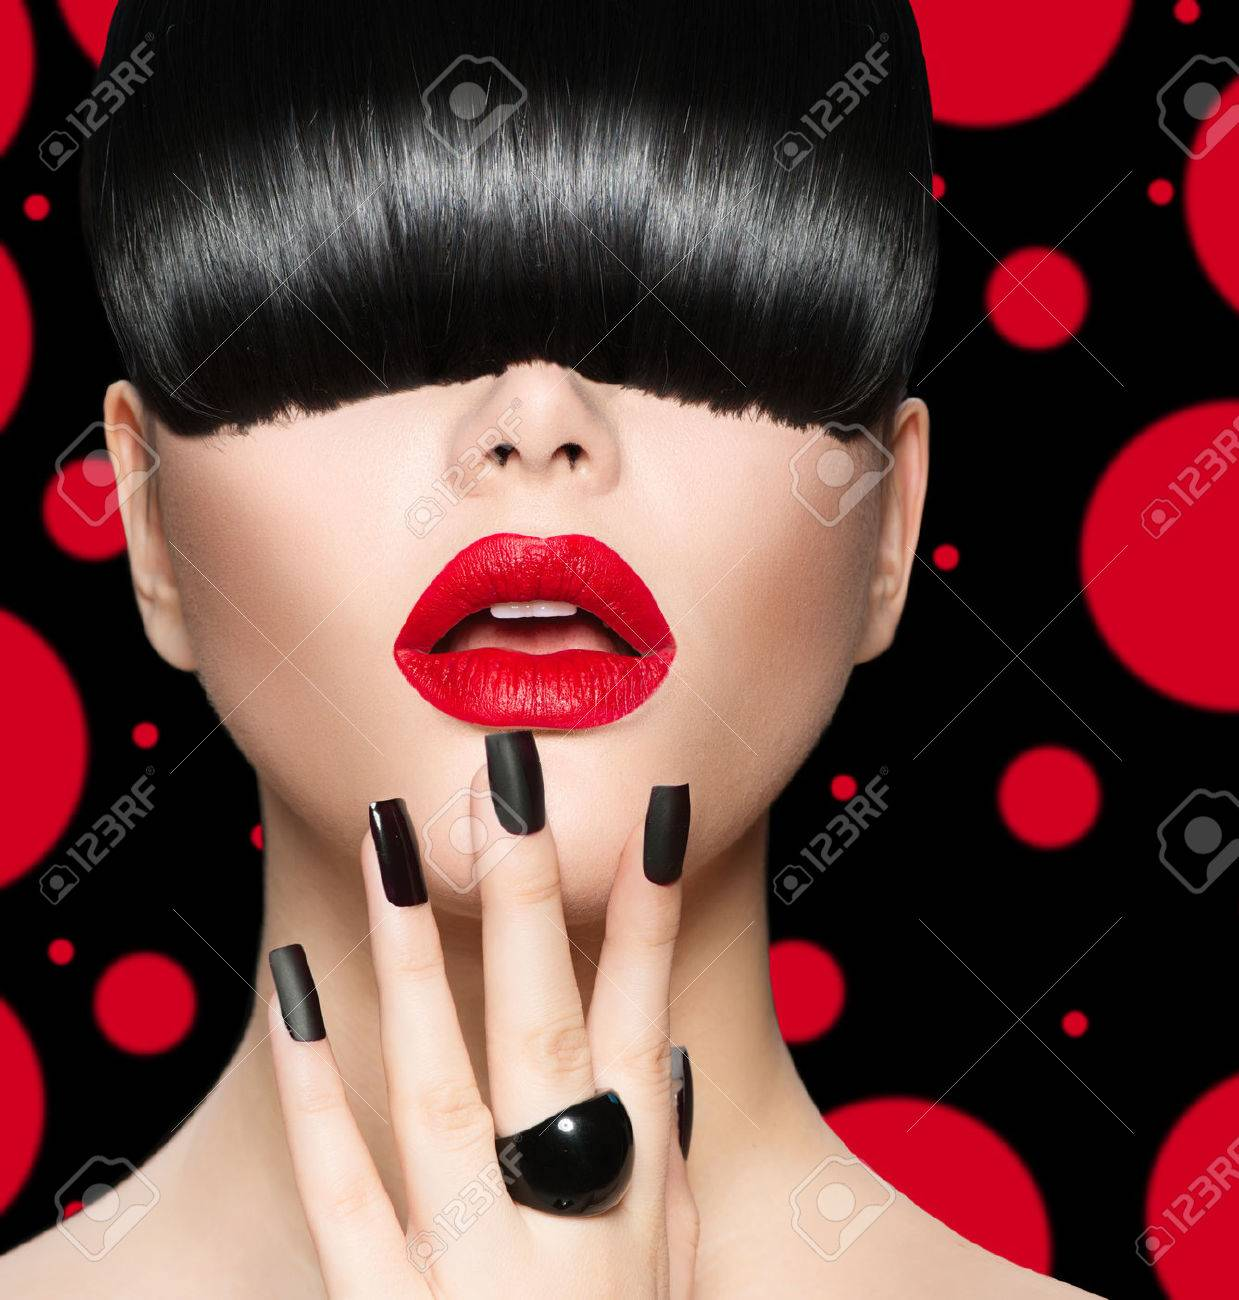 Model Girl Portrait with Trendy Hairstyle, Makeup and Manicure Stock Photo - 28851216